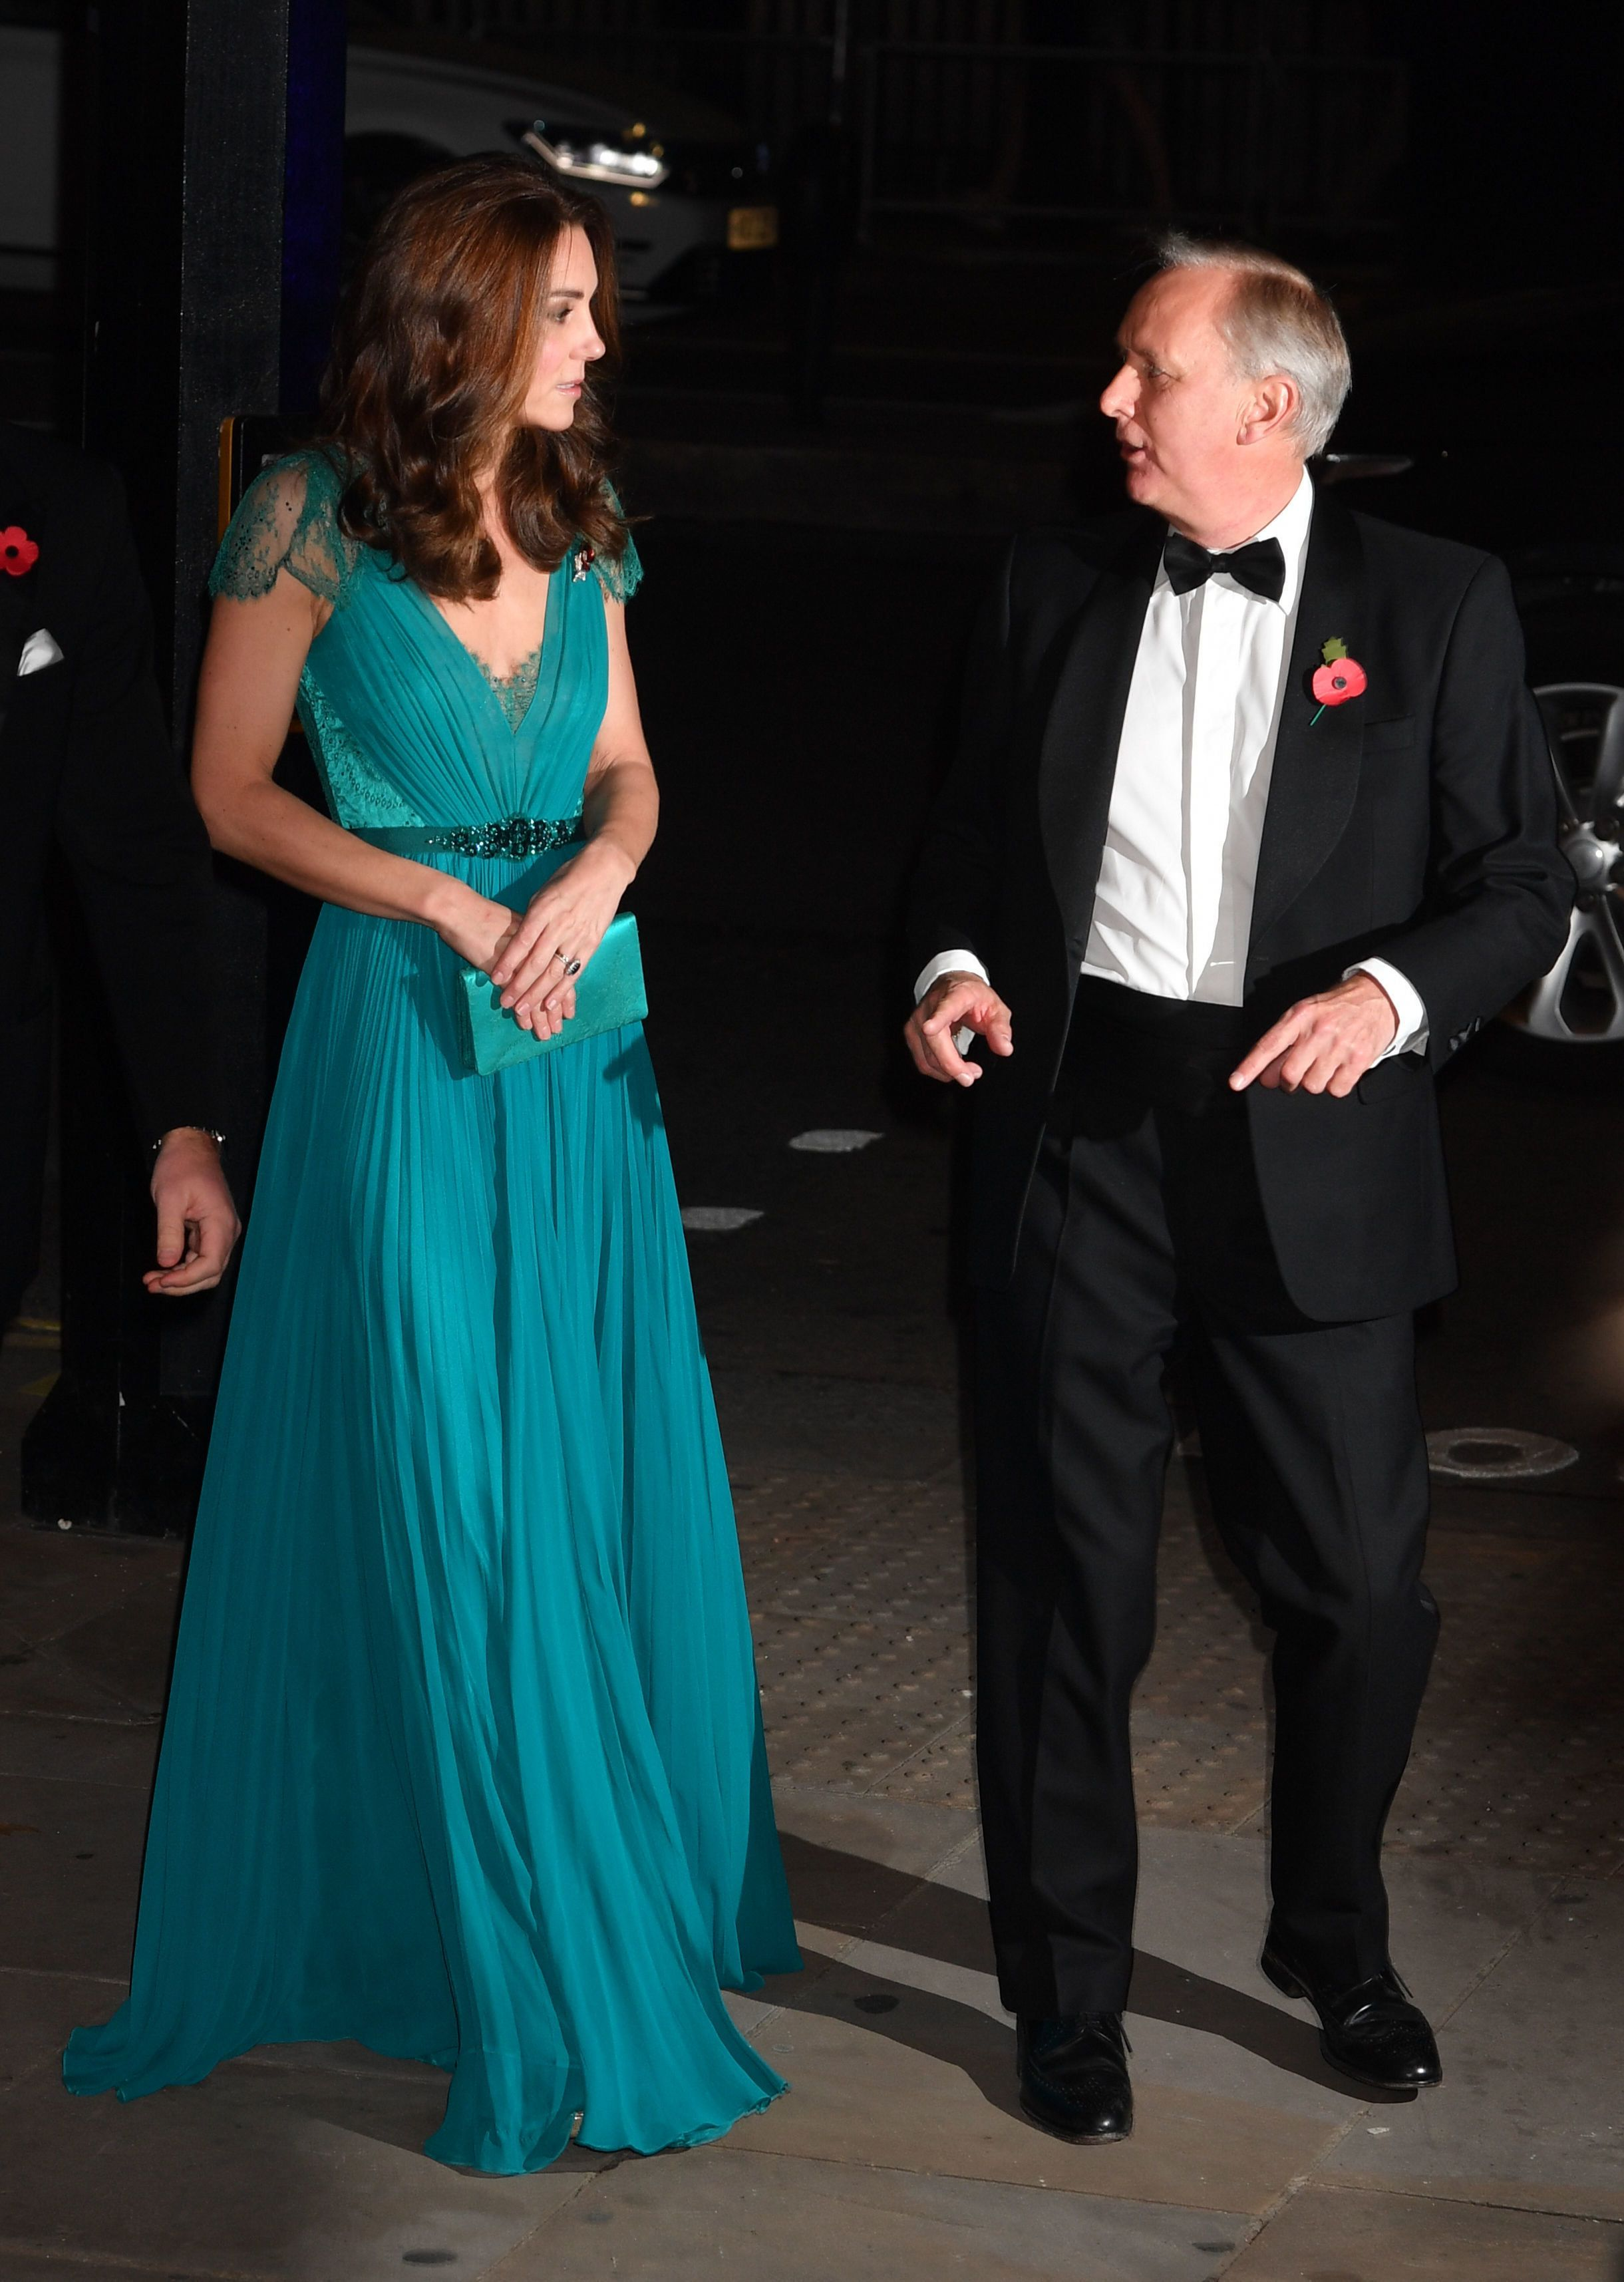 The Duchess of Cambridge talks with the chief executive of Tusk, Charles Mayhew.